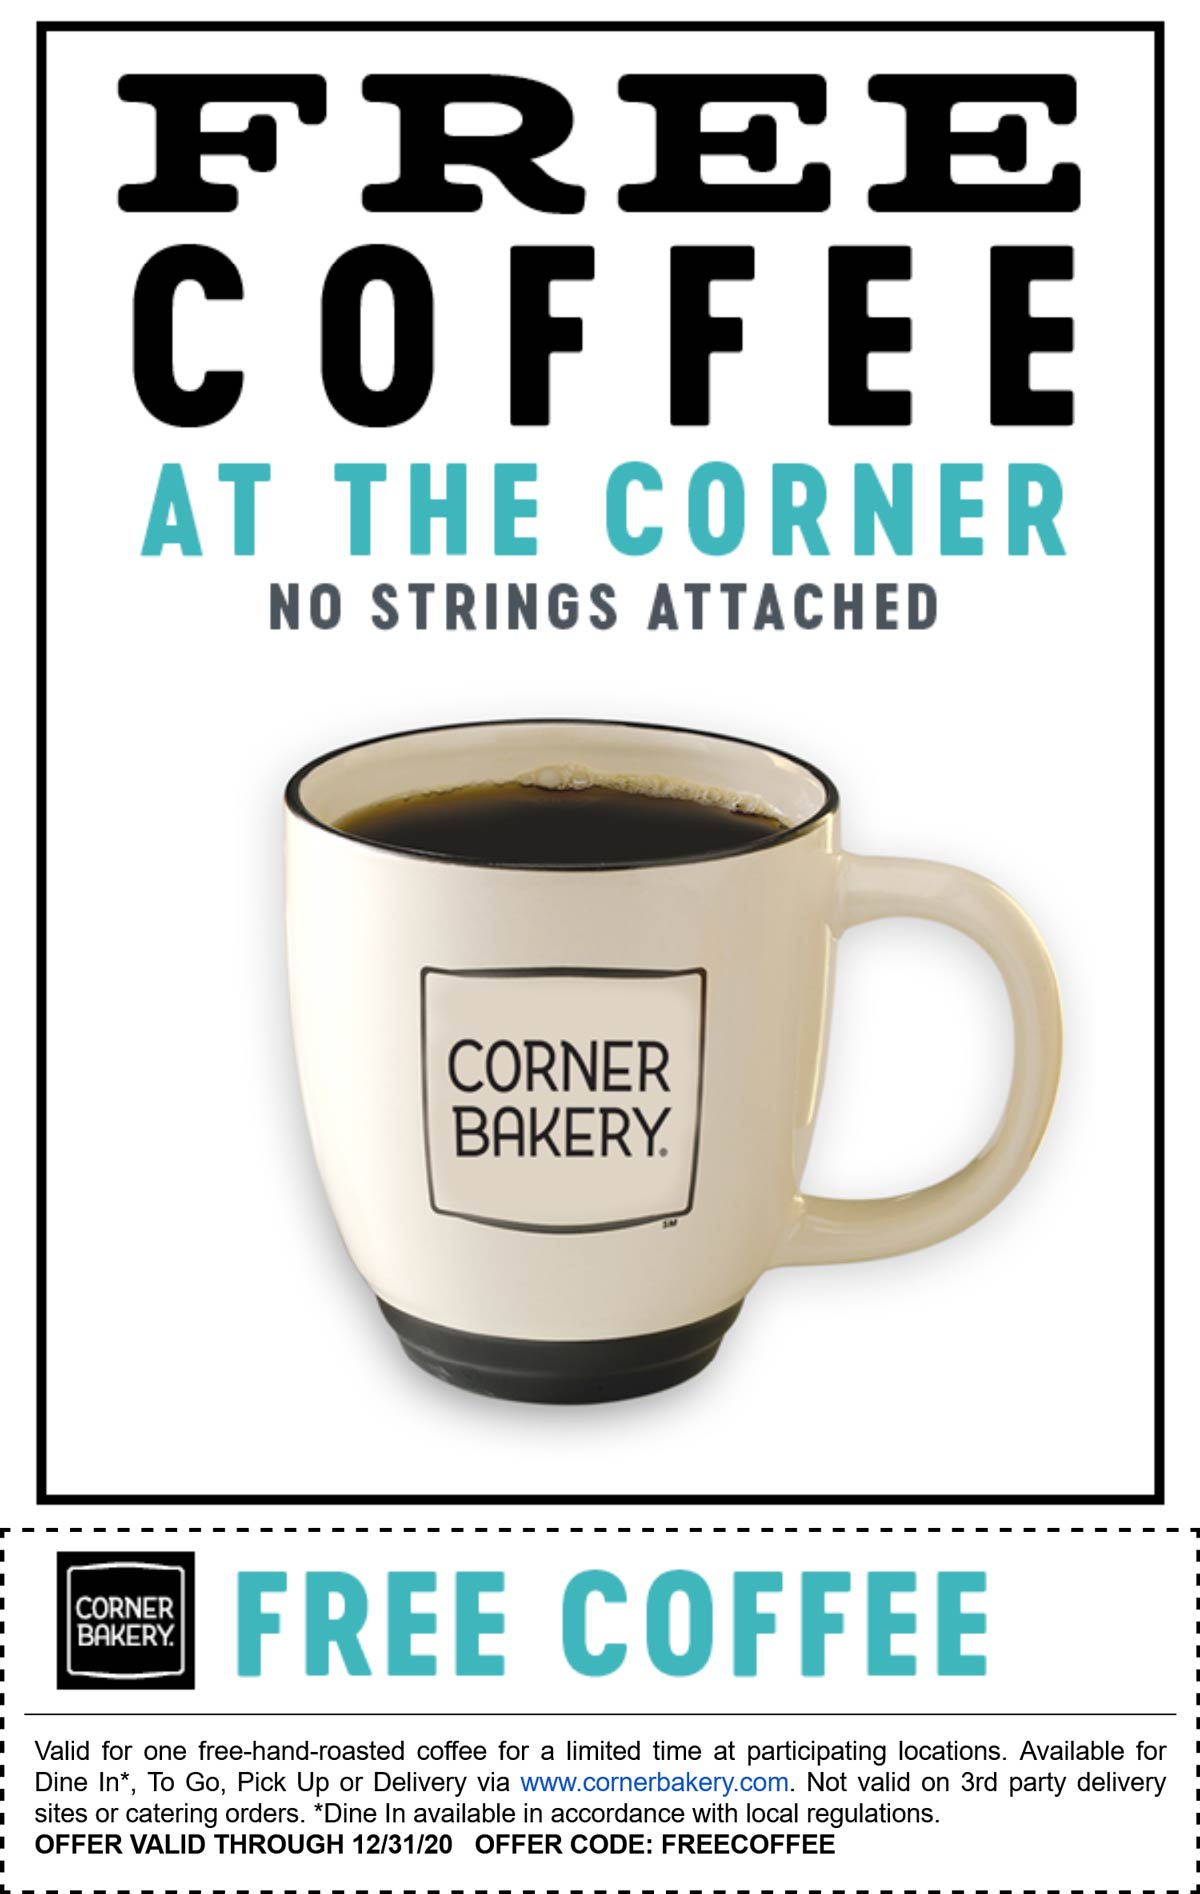 Corner Bakery restaurants Coupon  Free coffee all year at Corner Bakery Cafe no purchase required, or online via promo code FREECOFFEE #cornerbakery